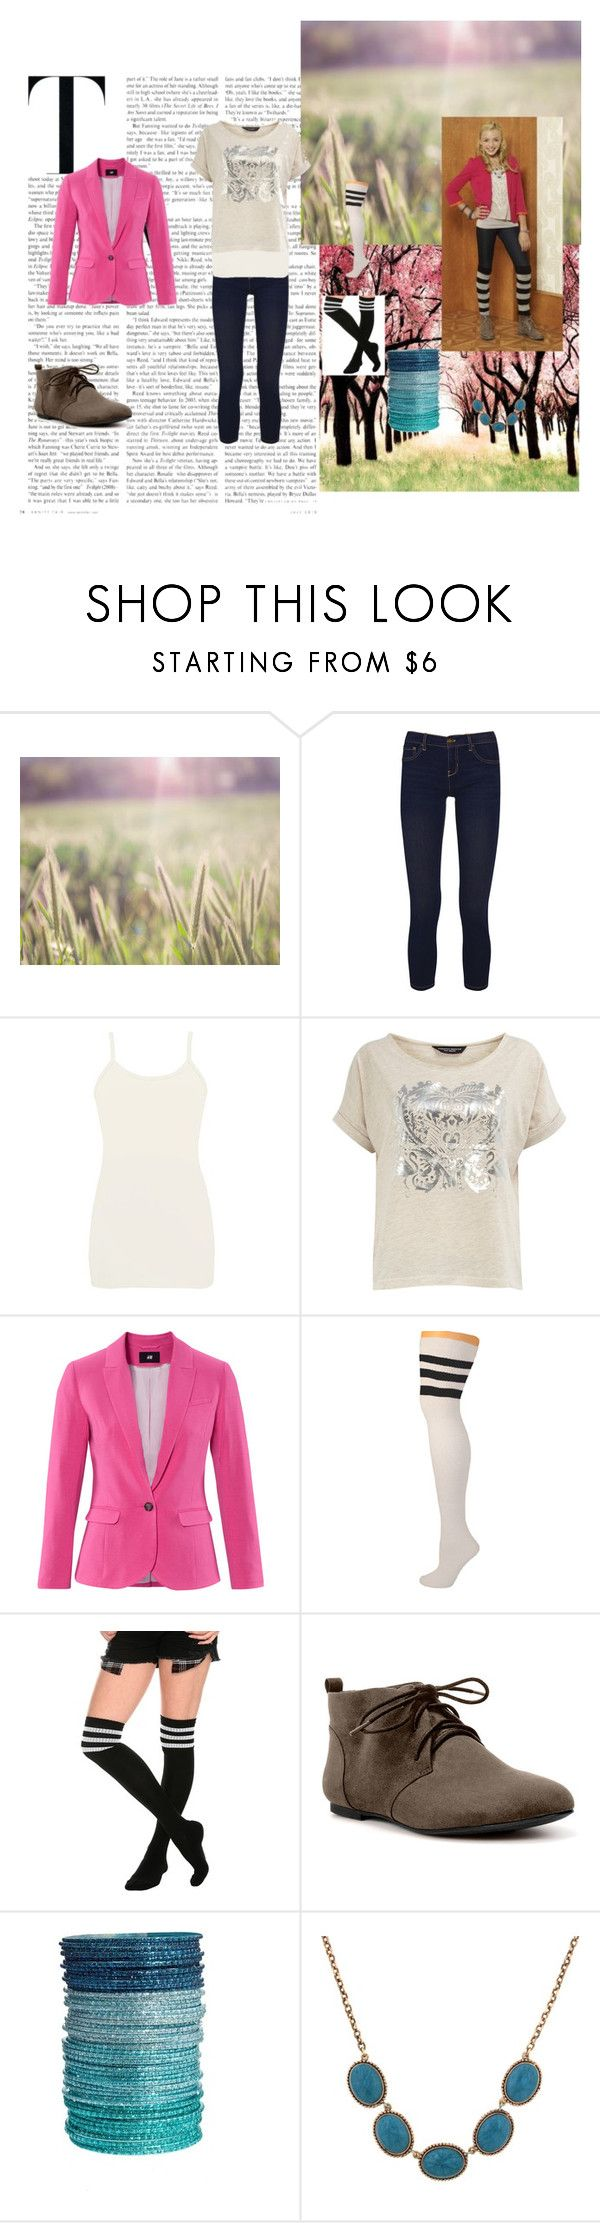 """Emma Ross- Jessie! outfit"" by pixie-willow ❤ liked on Polyvore featuring Disney, Juicy Couture, BKE, Dorothy Perkins, H&M, Retrò, Zara, ASOS, 1928 and skinny jeans"